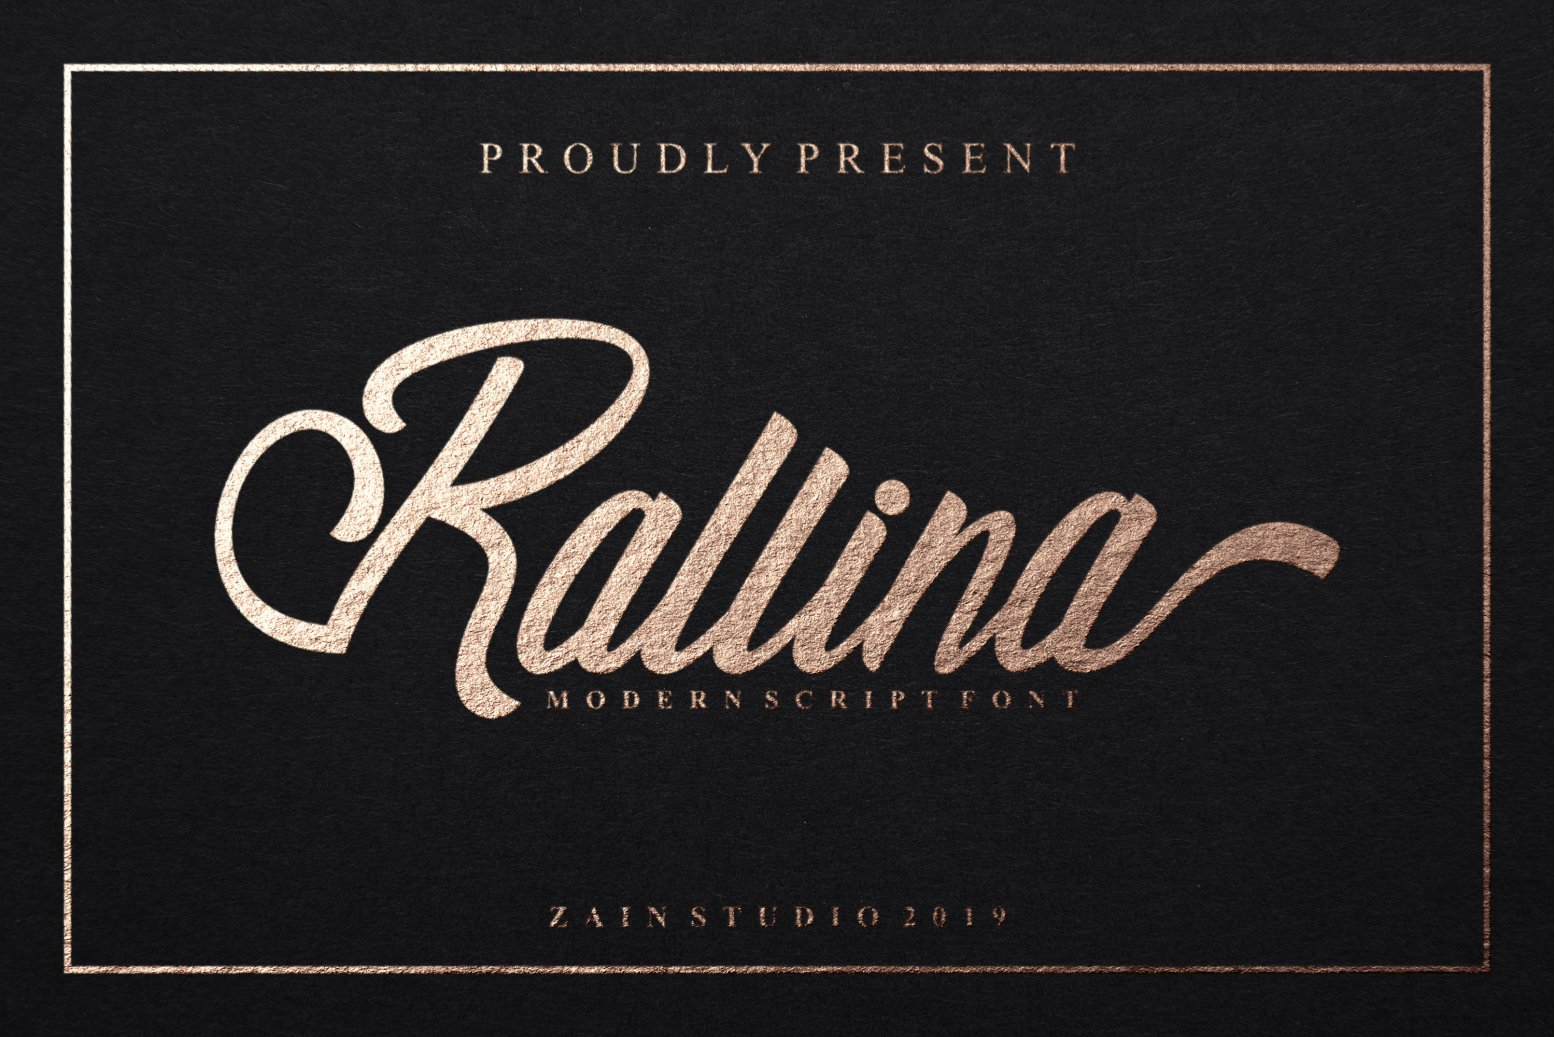 Ralline Modern Script Font example image 1